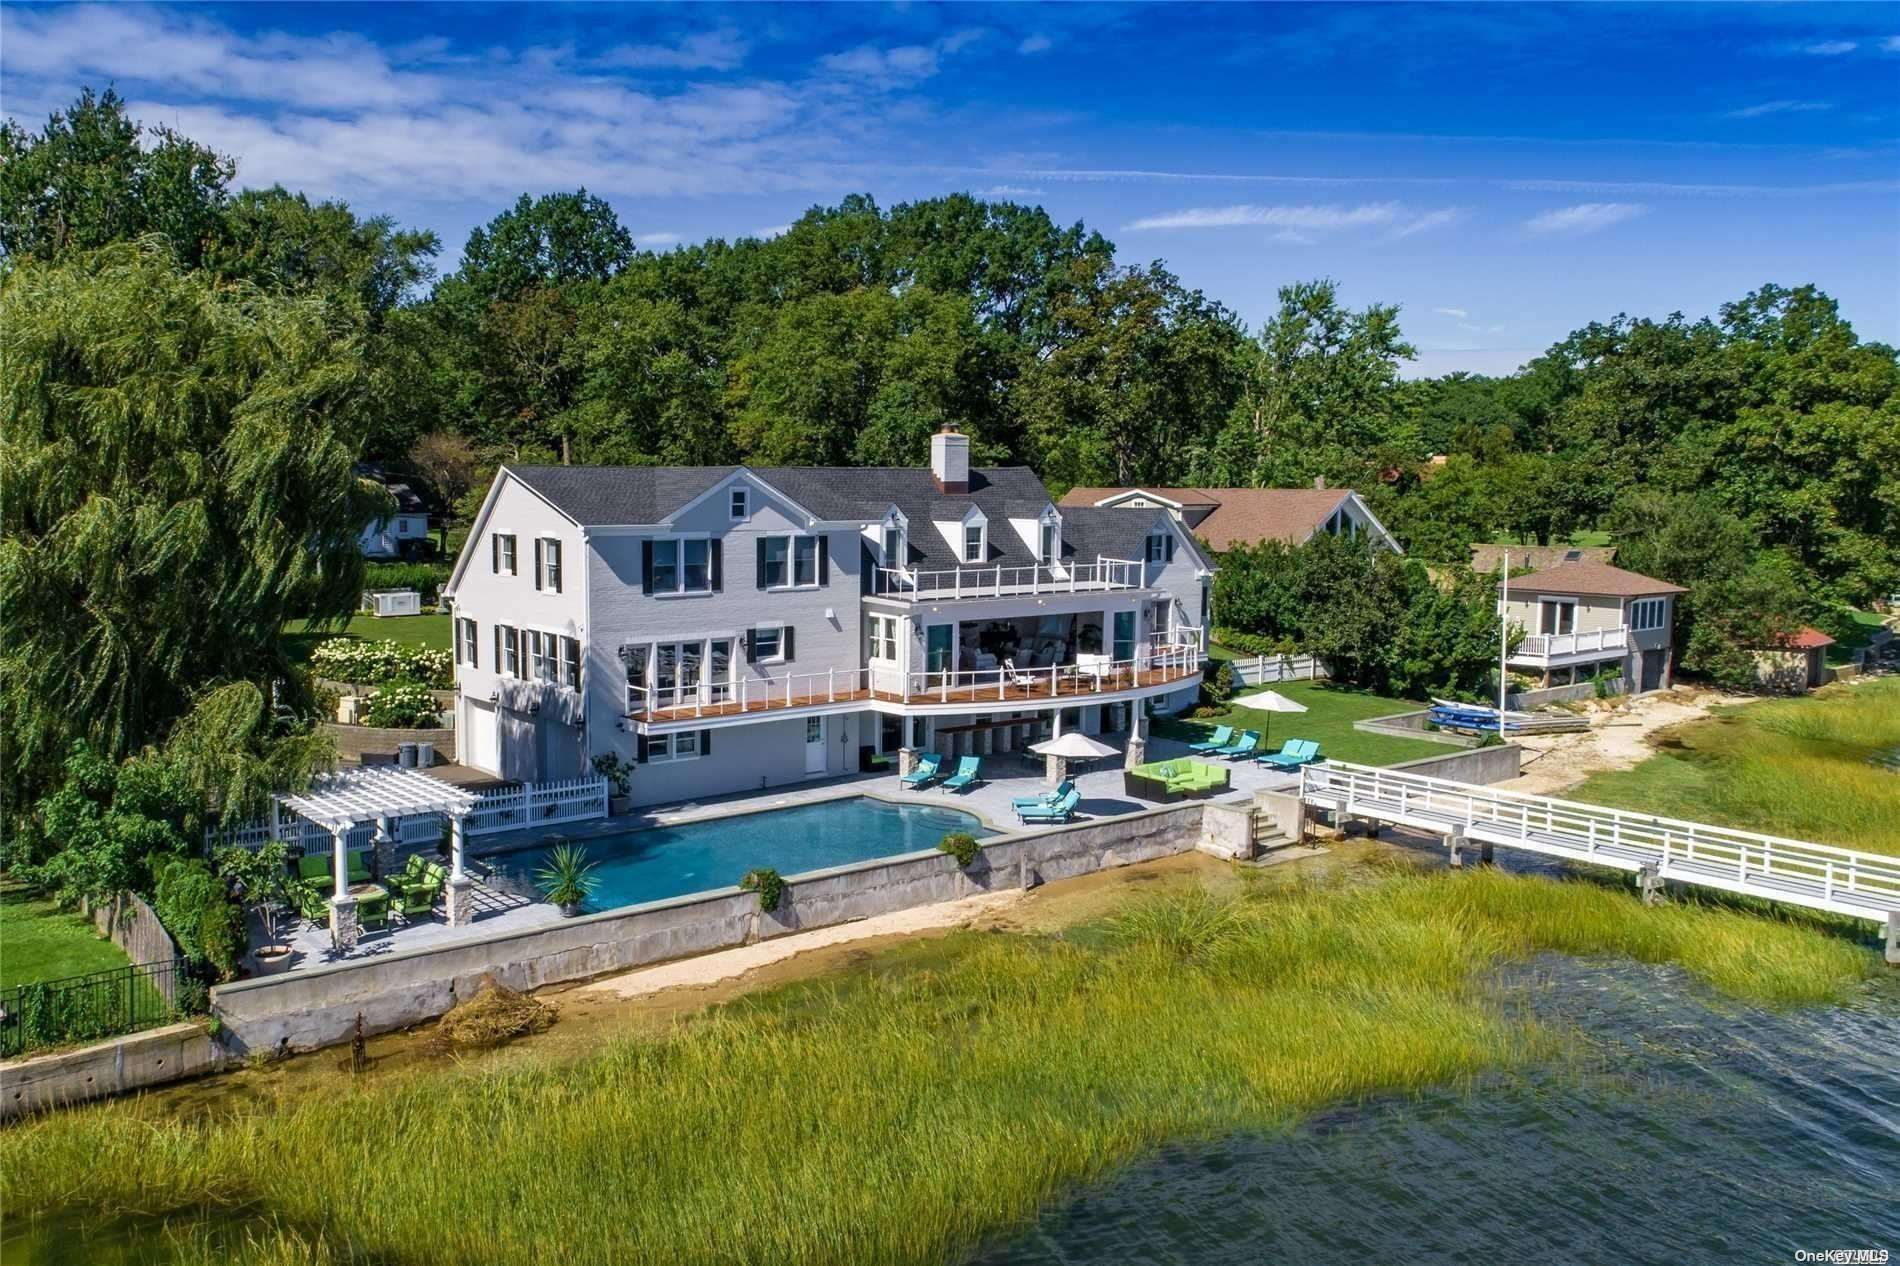 Gated Waterfront Colonial Totally Renovated With Exquisite Touches Throughout and Private Dock Overlooking Oyster Bay Harbor. Notable Features Include Spectacular Family Room With Sliding Doors and Walk Out Lower Level to a Beautiful Stone Patio, Gunite Pool, and 200 Ft Of Private Beach that are Perfect for Entertaining in Your Own Private Paradise. Cul De Sac Location, 3 Car Garage, Generator, True Summer Oasis! Alternative To The Hamptons!